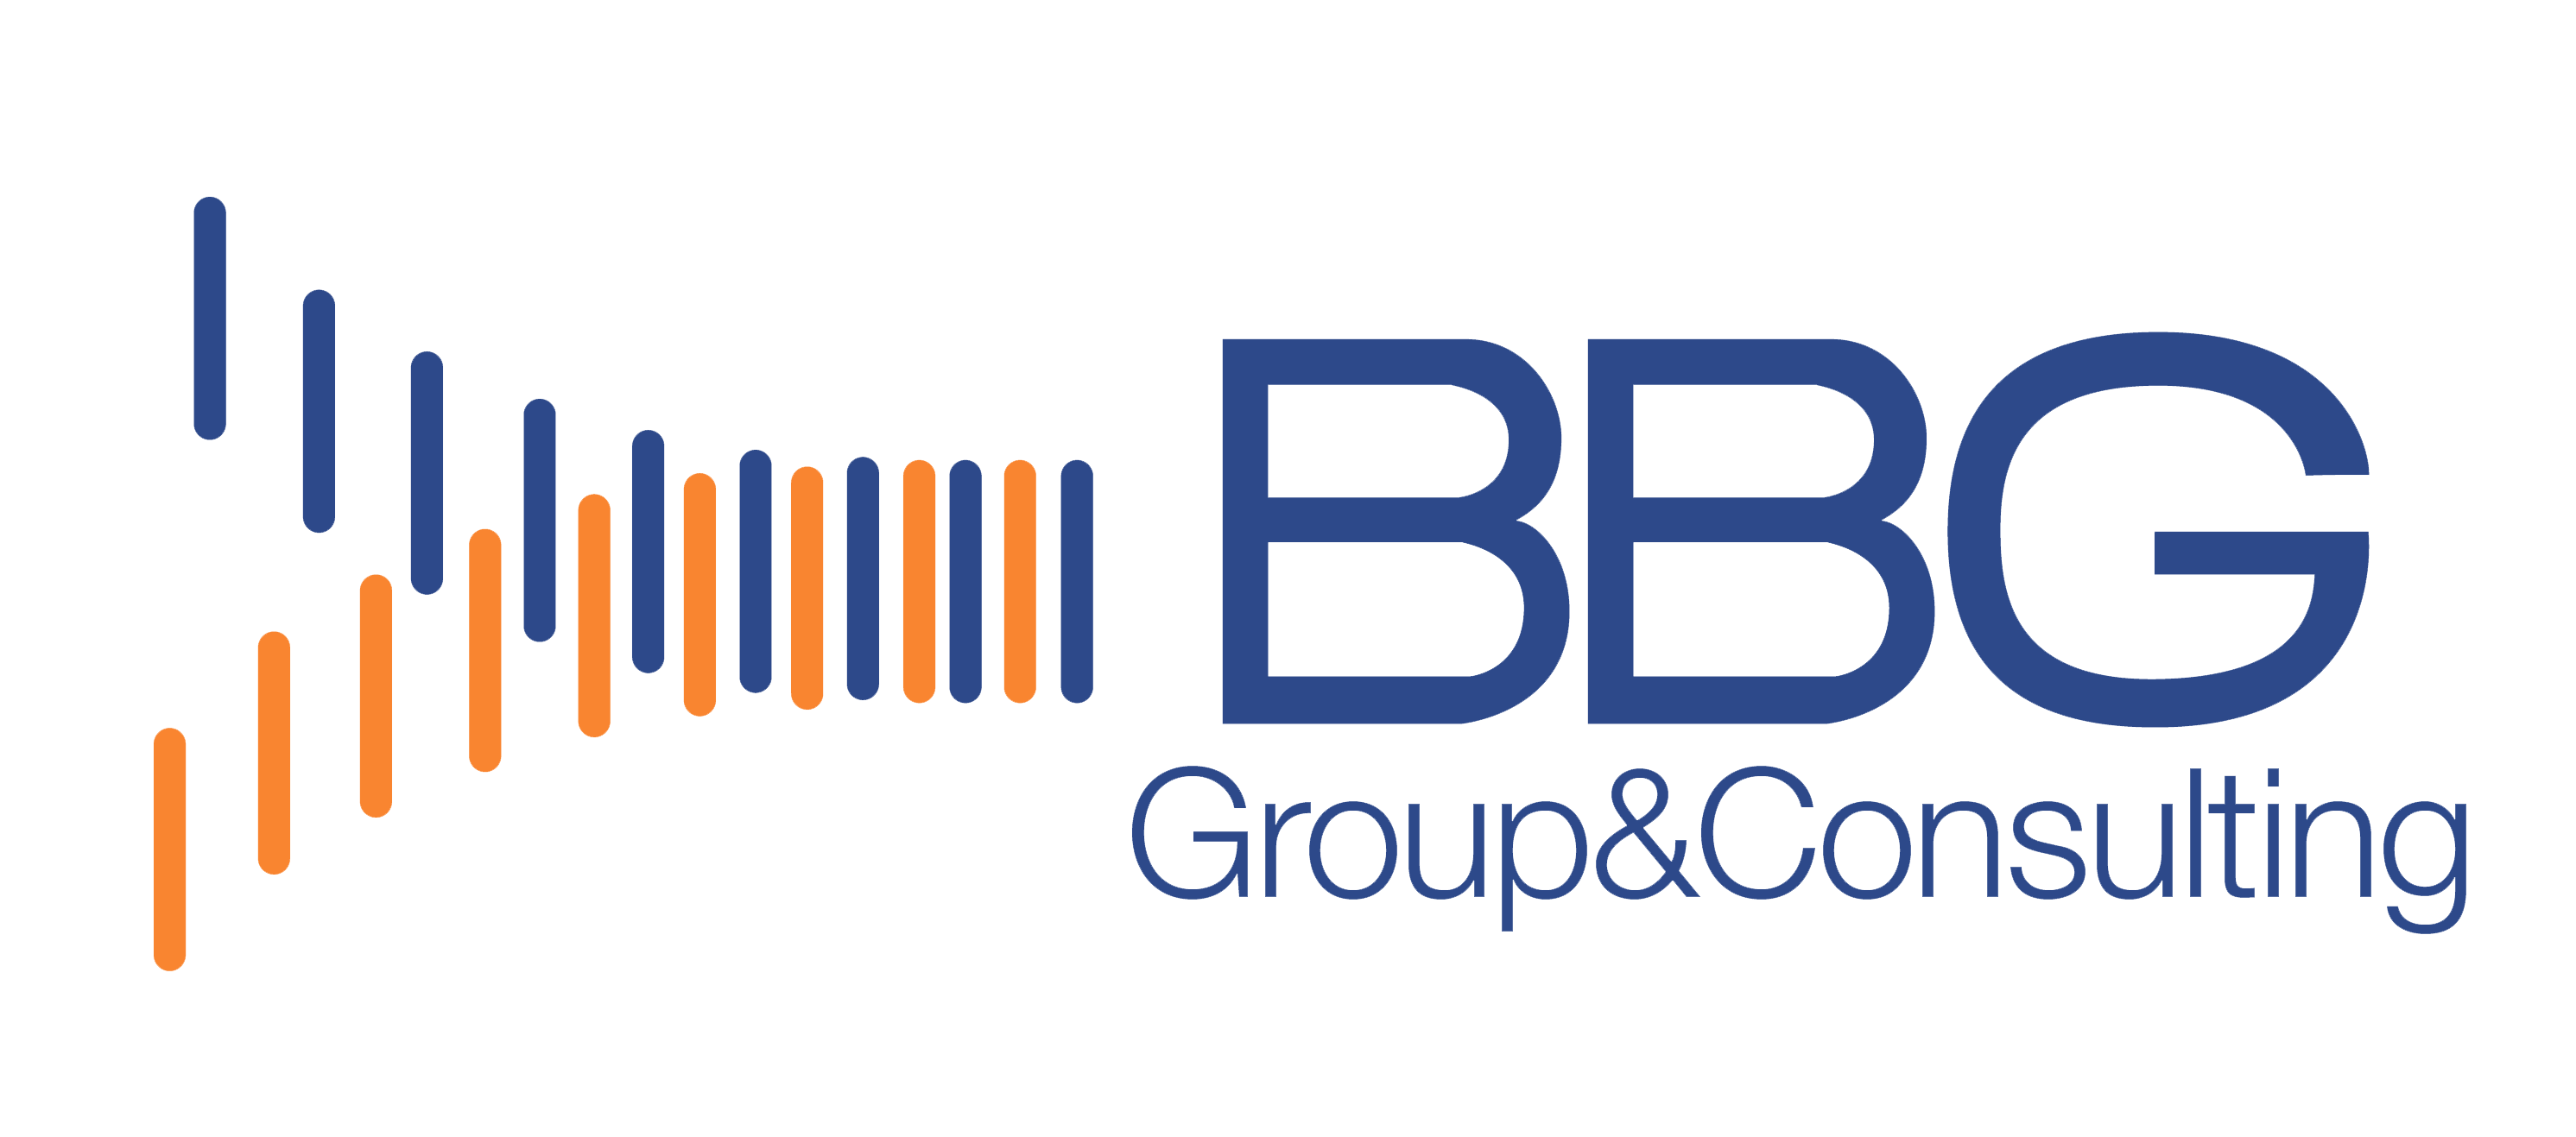 BBG Group & Consulting